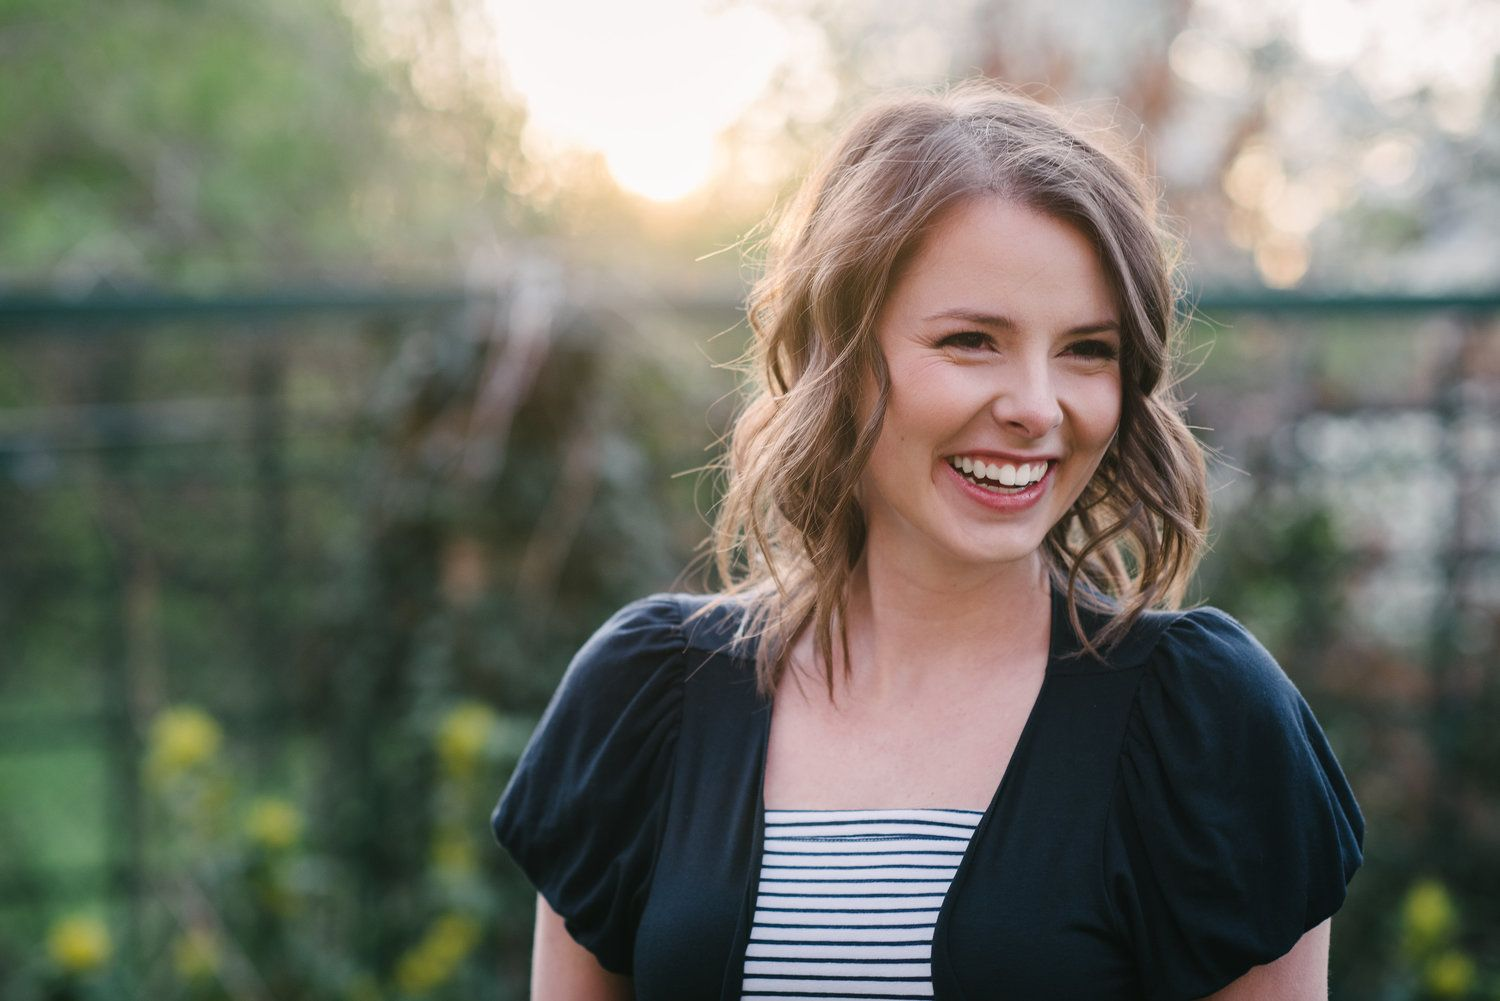 Rachel Michelle Wilson    (   @rachelmichellewrites   ) is an author, illustrator, and cookie dough enthusiast living in Utah with her dreamboat husband.